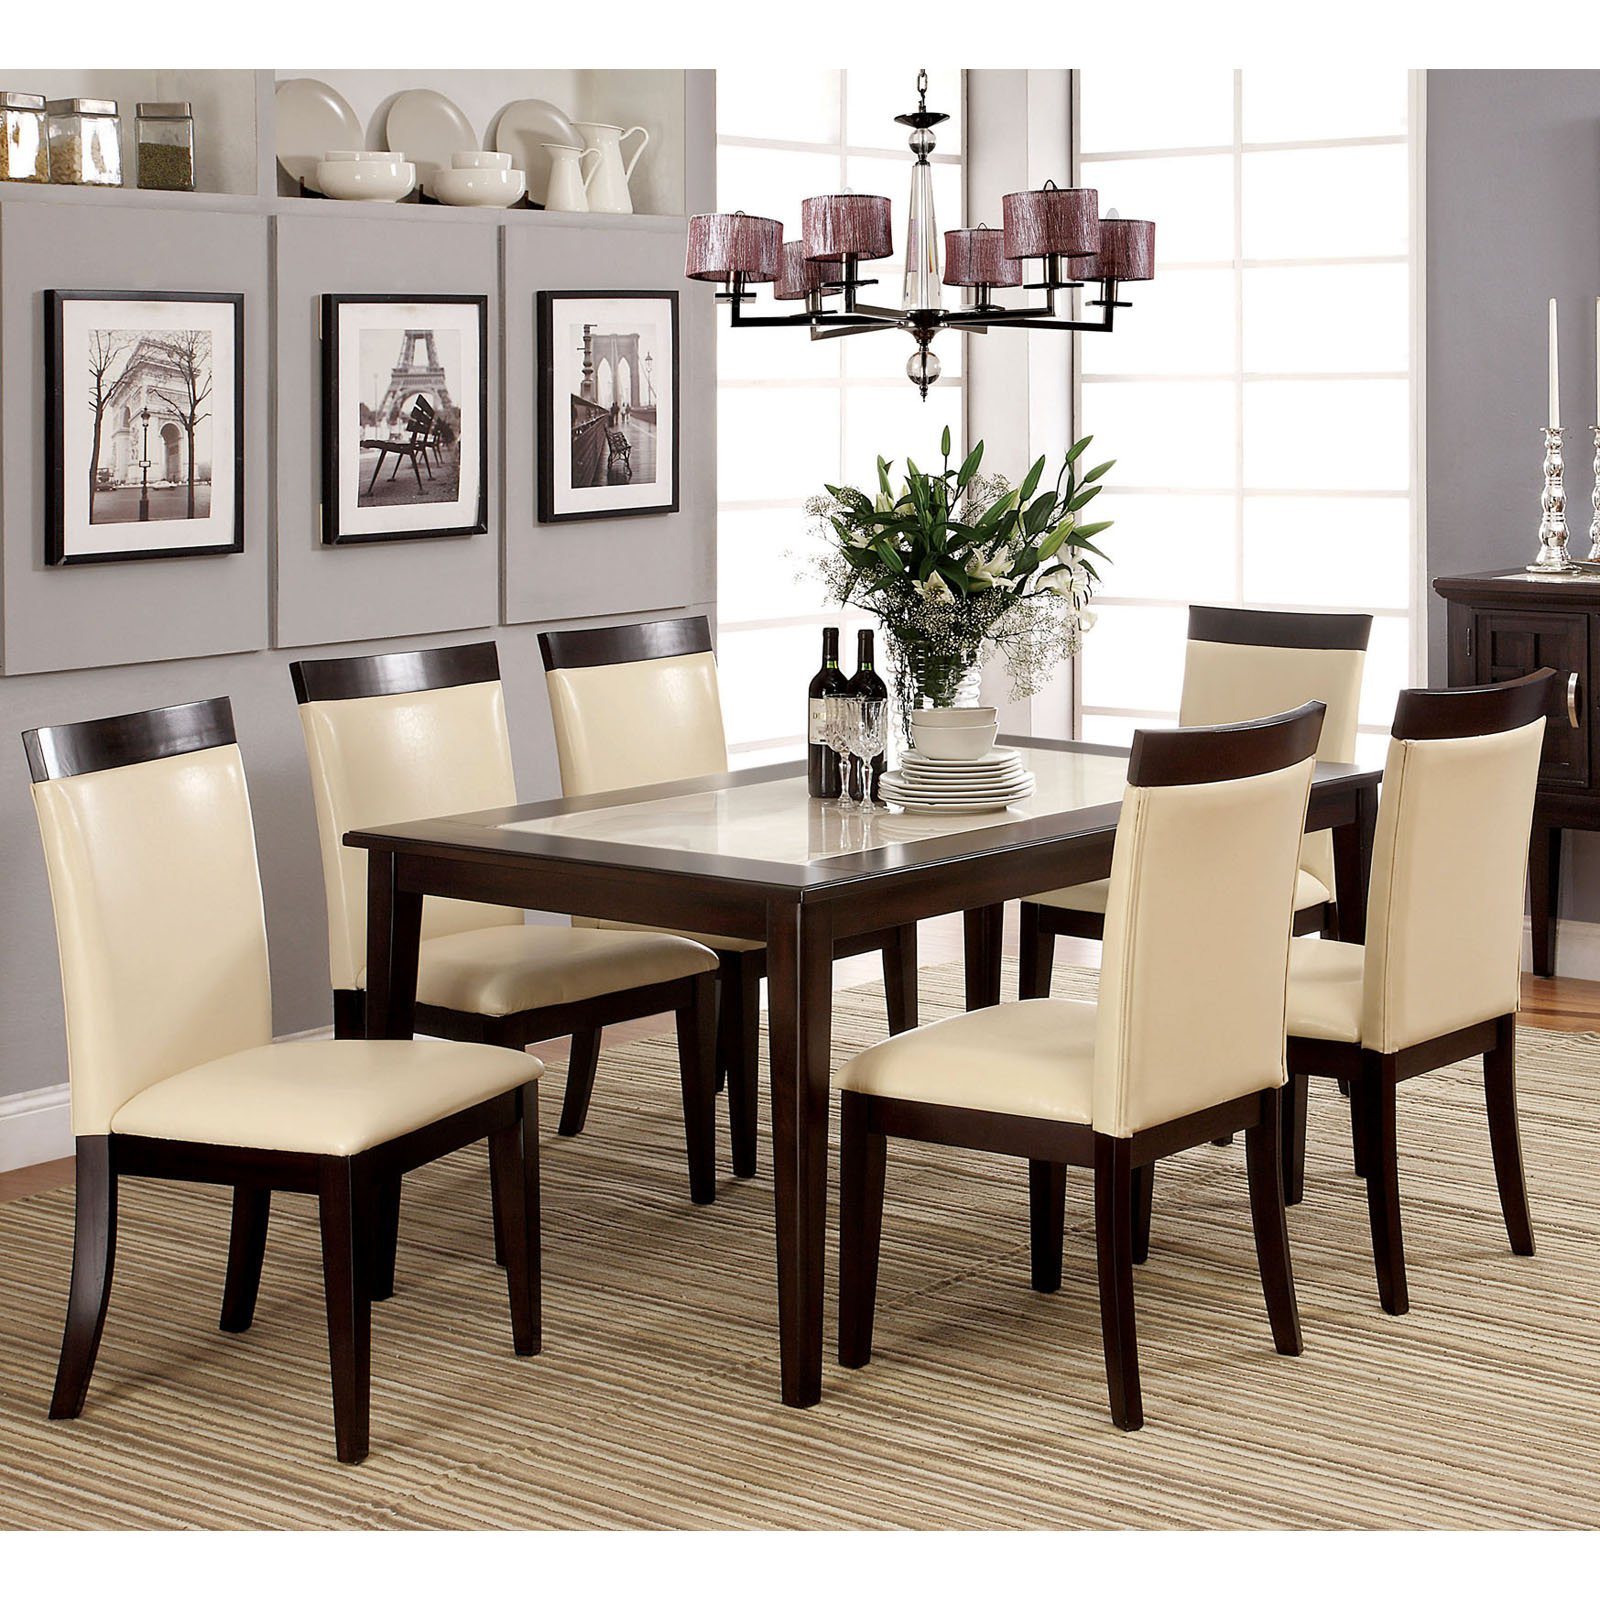 dining table sets. Dining Table Set. Set S Sets I